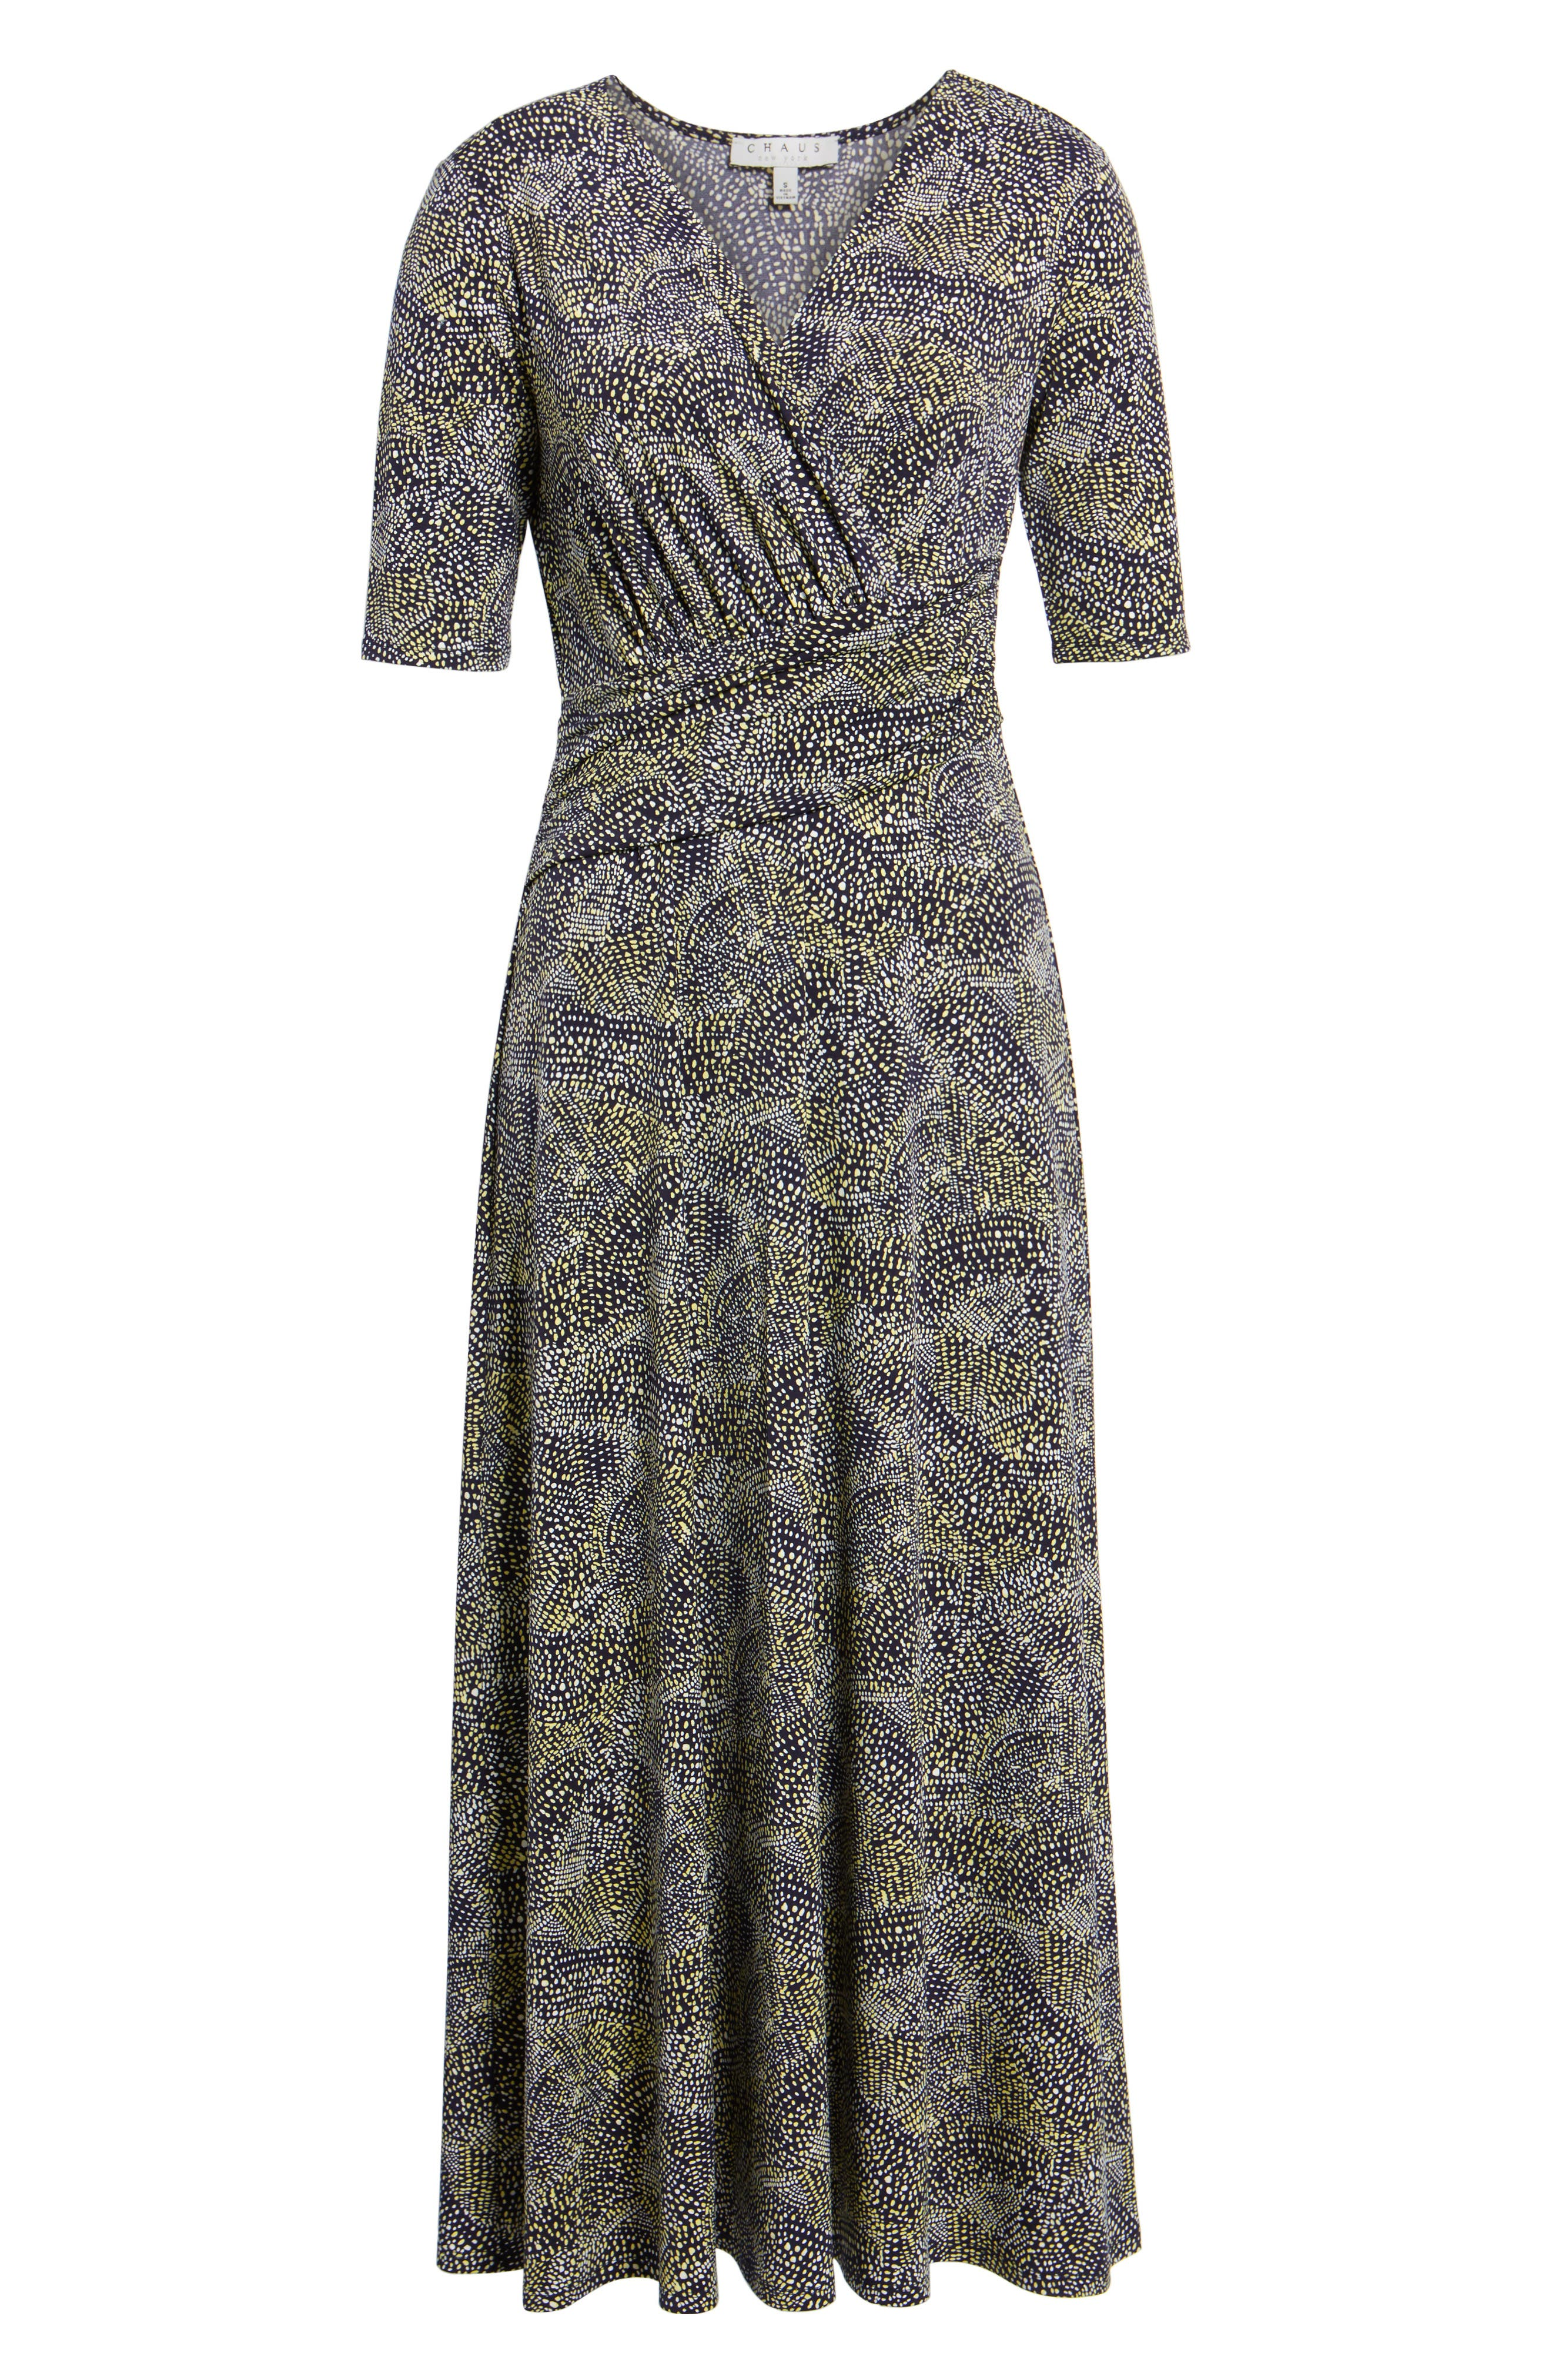 Ruched Speckle Midi Dress,                             Alternate thumbnail 6, color,                             784